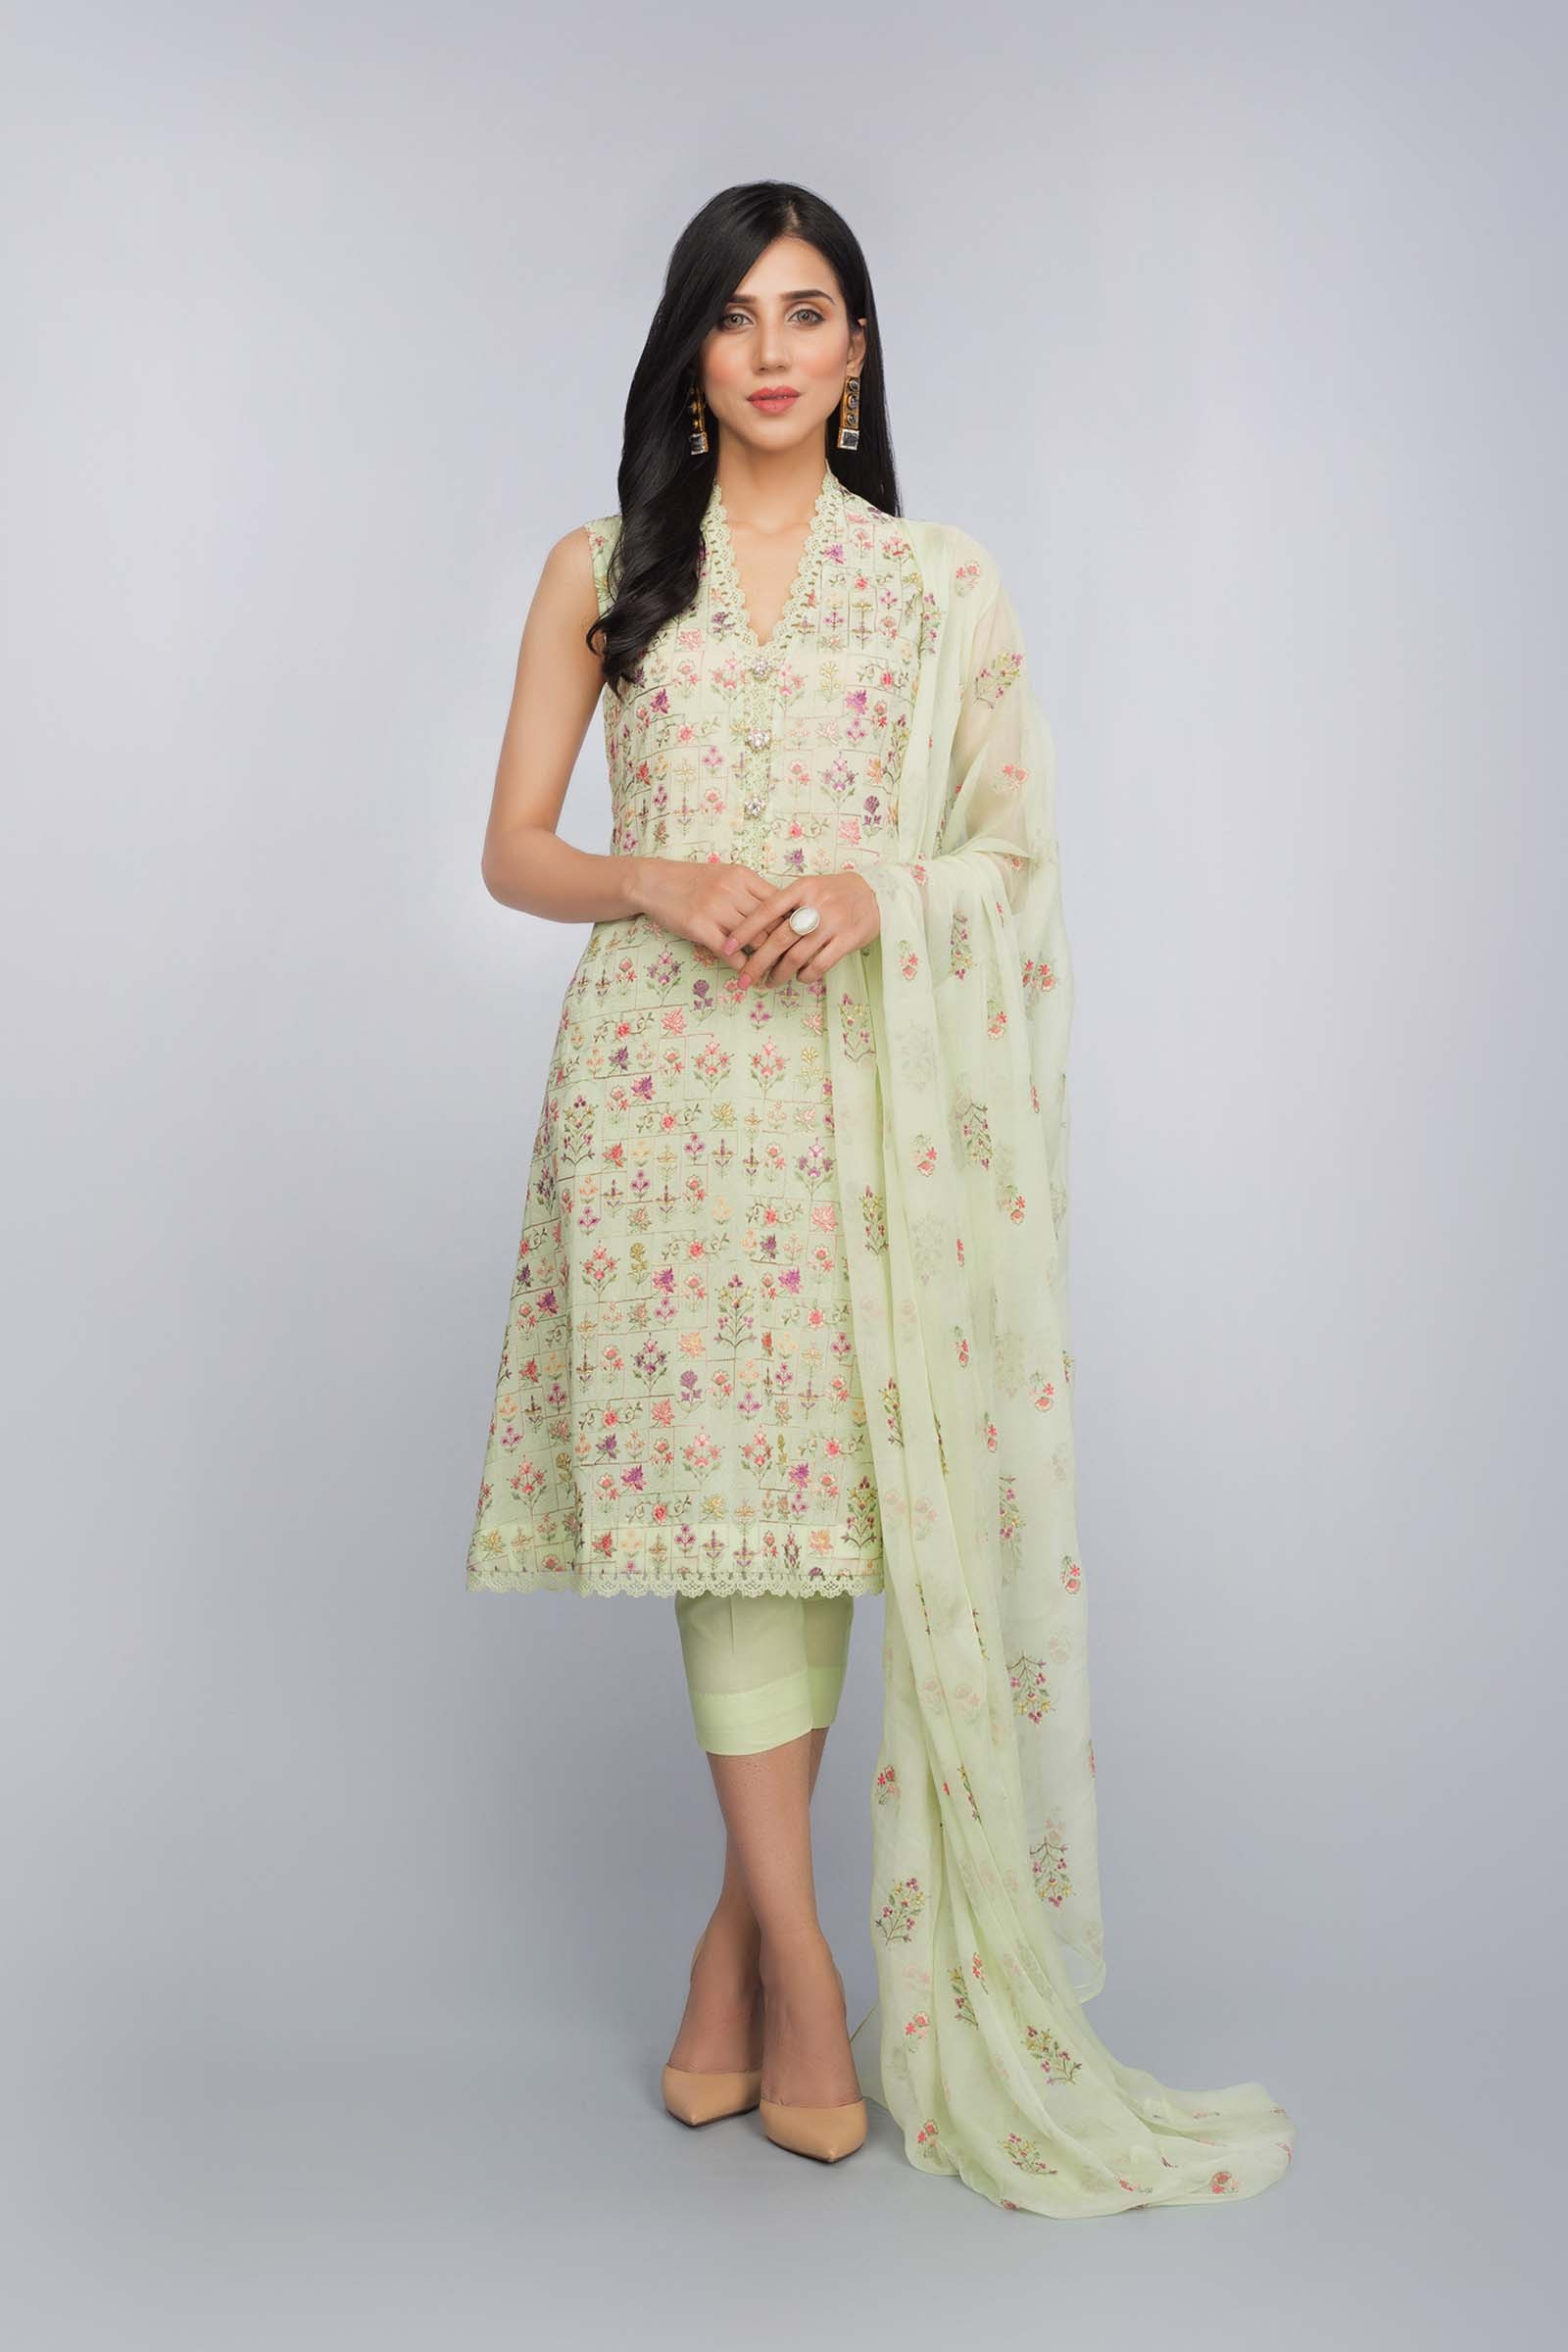 7670698b48 Buy Online Peacock Printed Lawn Suit by Bareeze Summer Collection ...